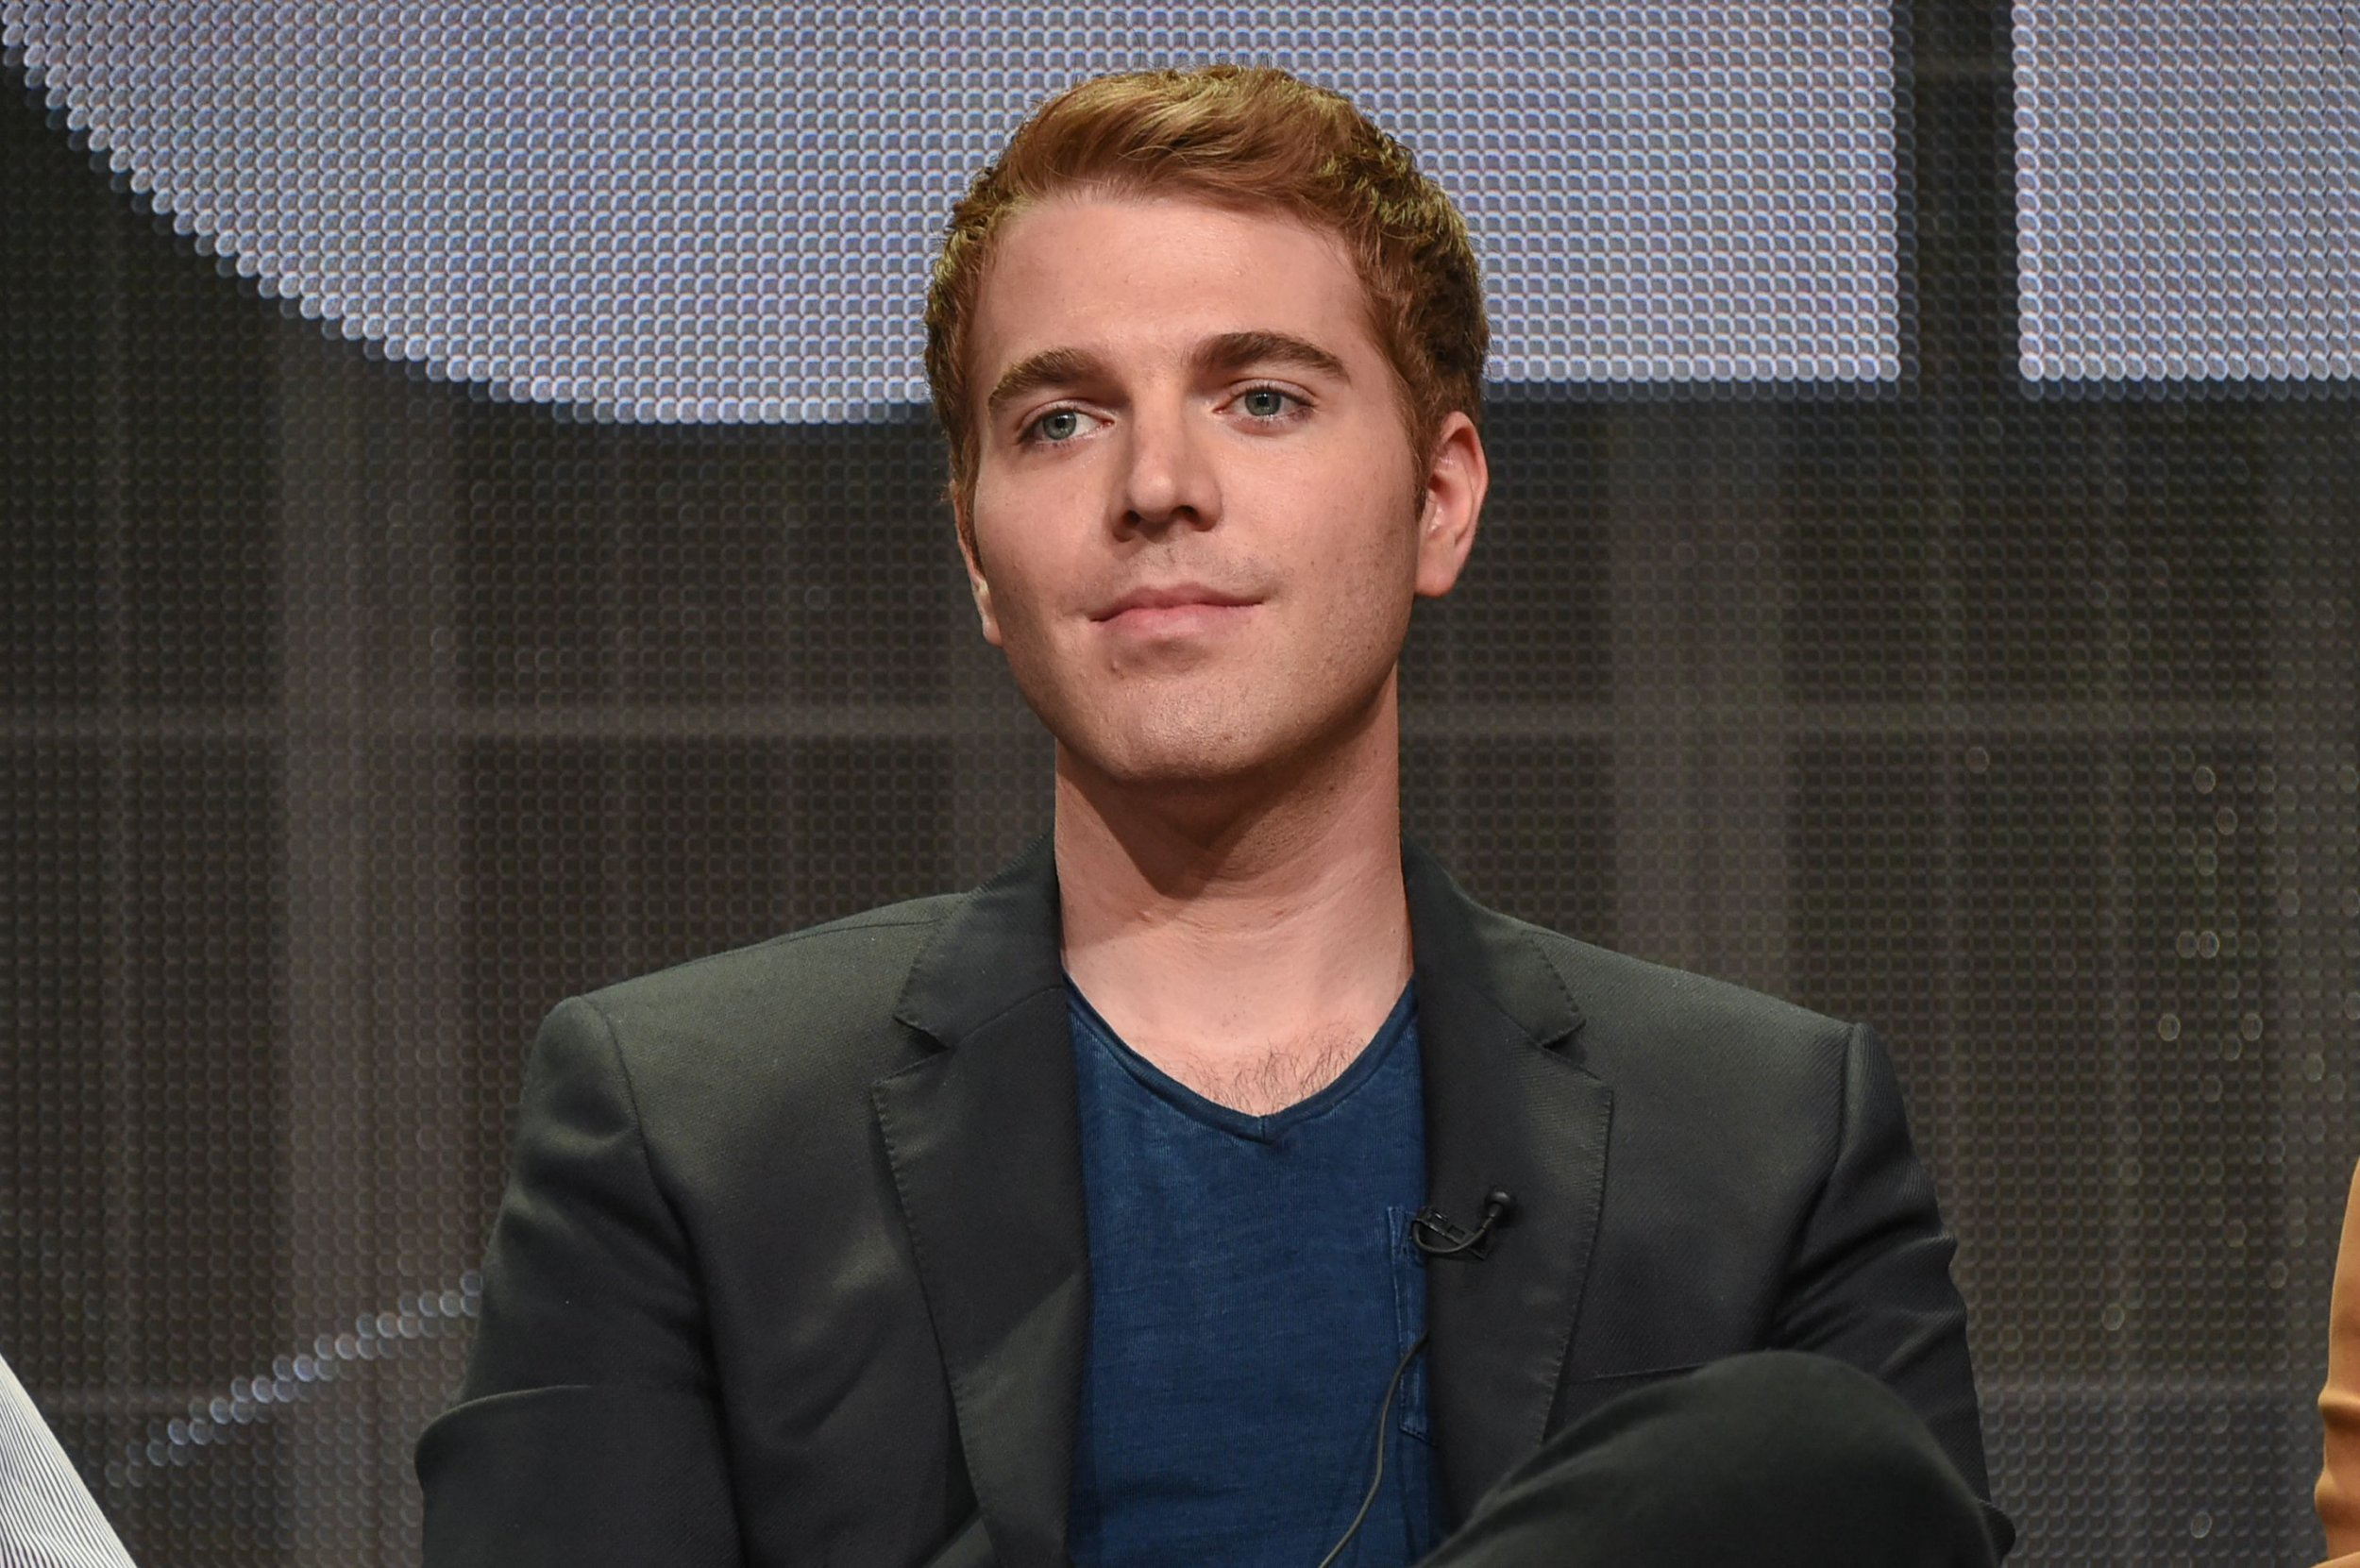 Shane Dawson Is A Big Youtube Personality Picture Rob Latour Rex Shutterstock 3923247j